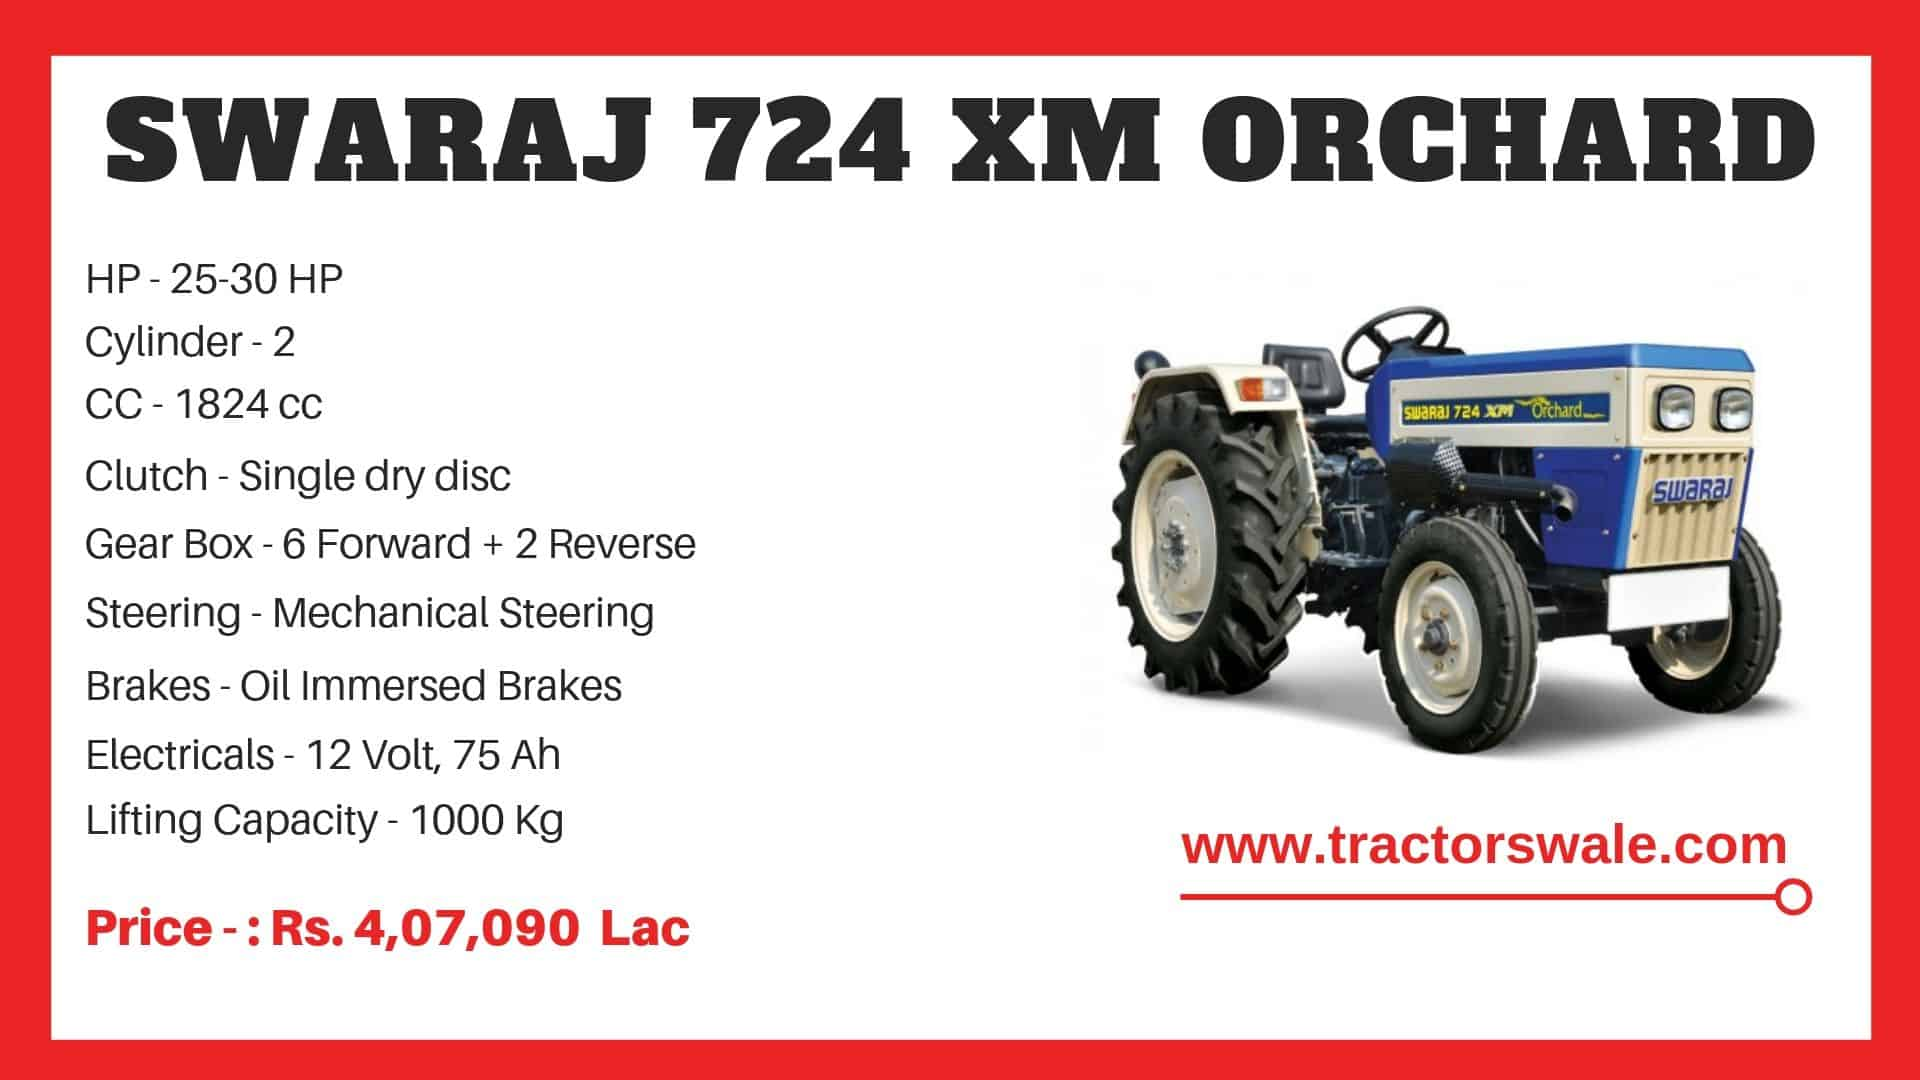 Specification of Swaraj 724 XM ORCHARD